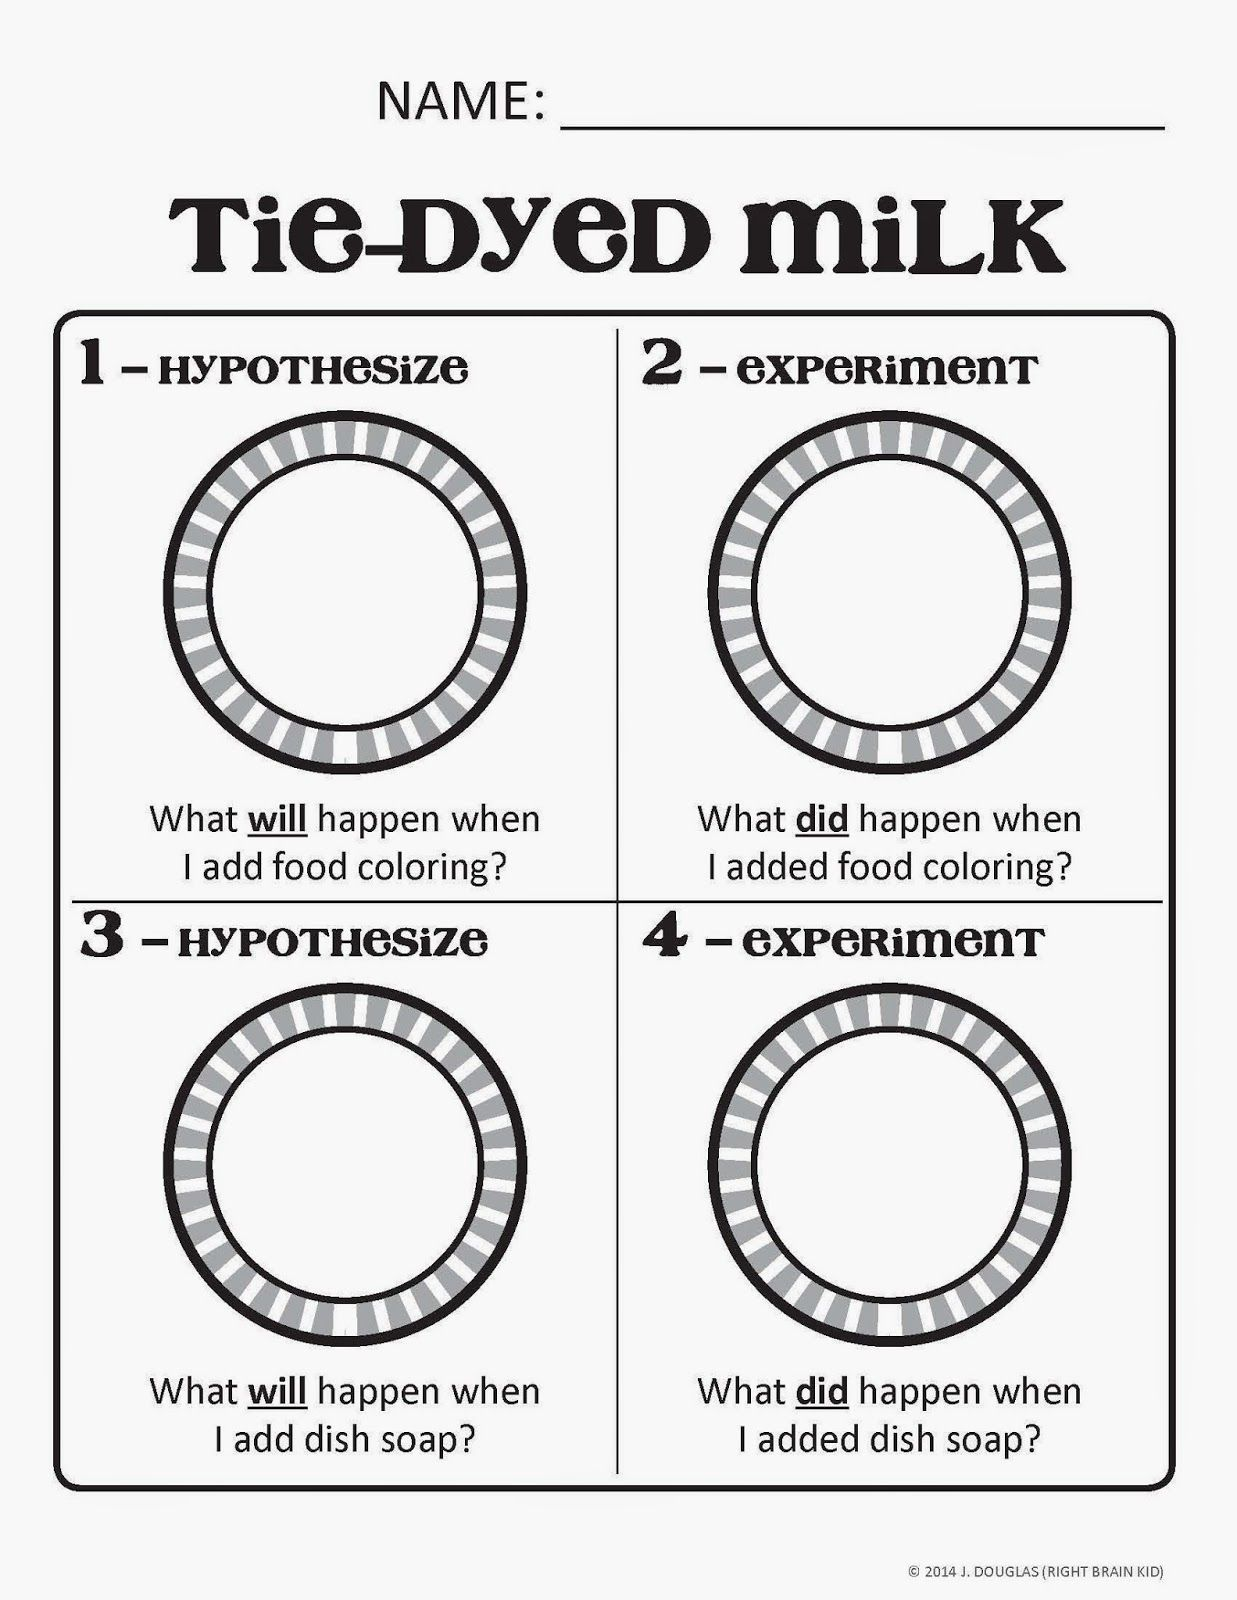 Activity Sheet To Go With The Milk And Food Coloring Experiment